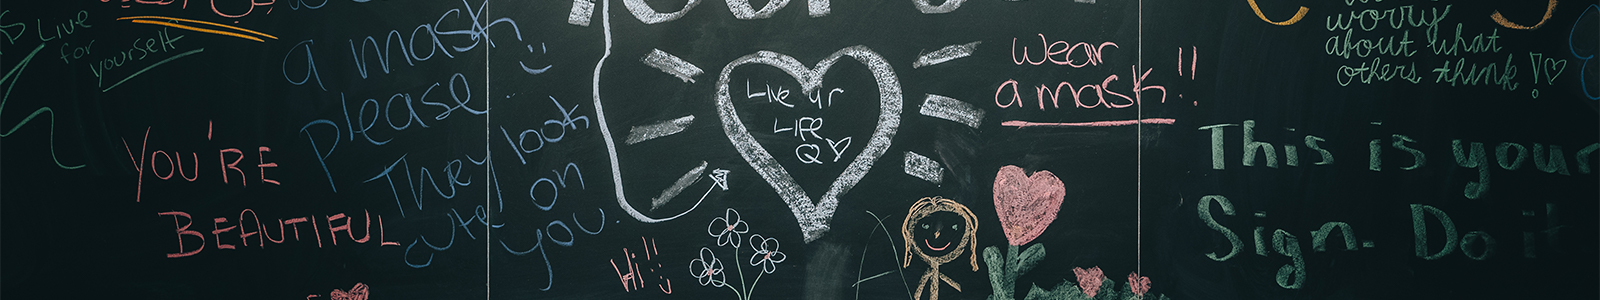 A black chalkboard with lots of colorful, positive handwritten messages. There is a large heart in the center.